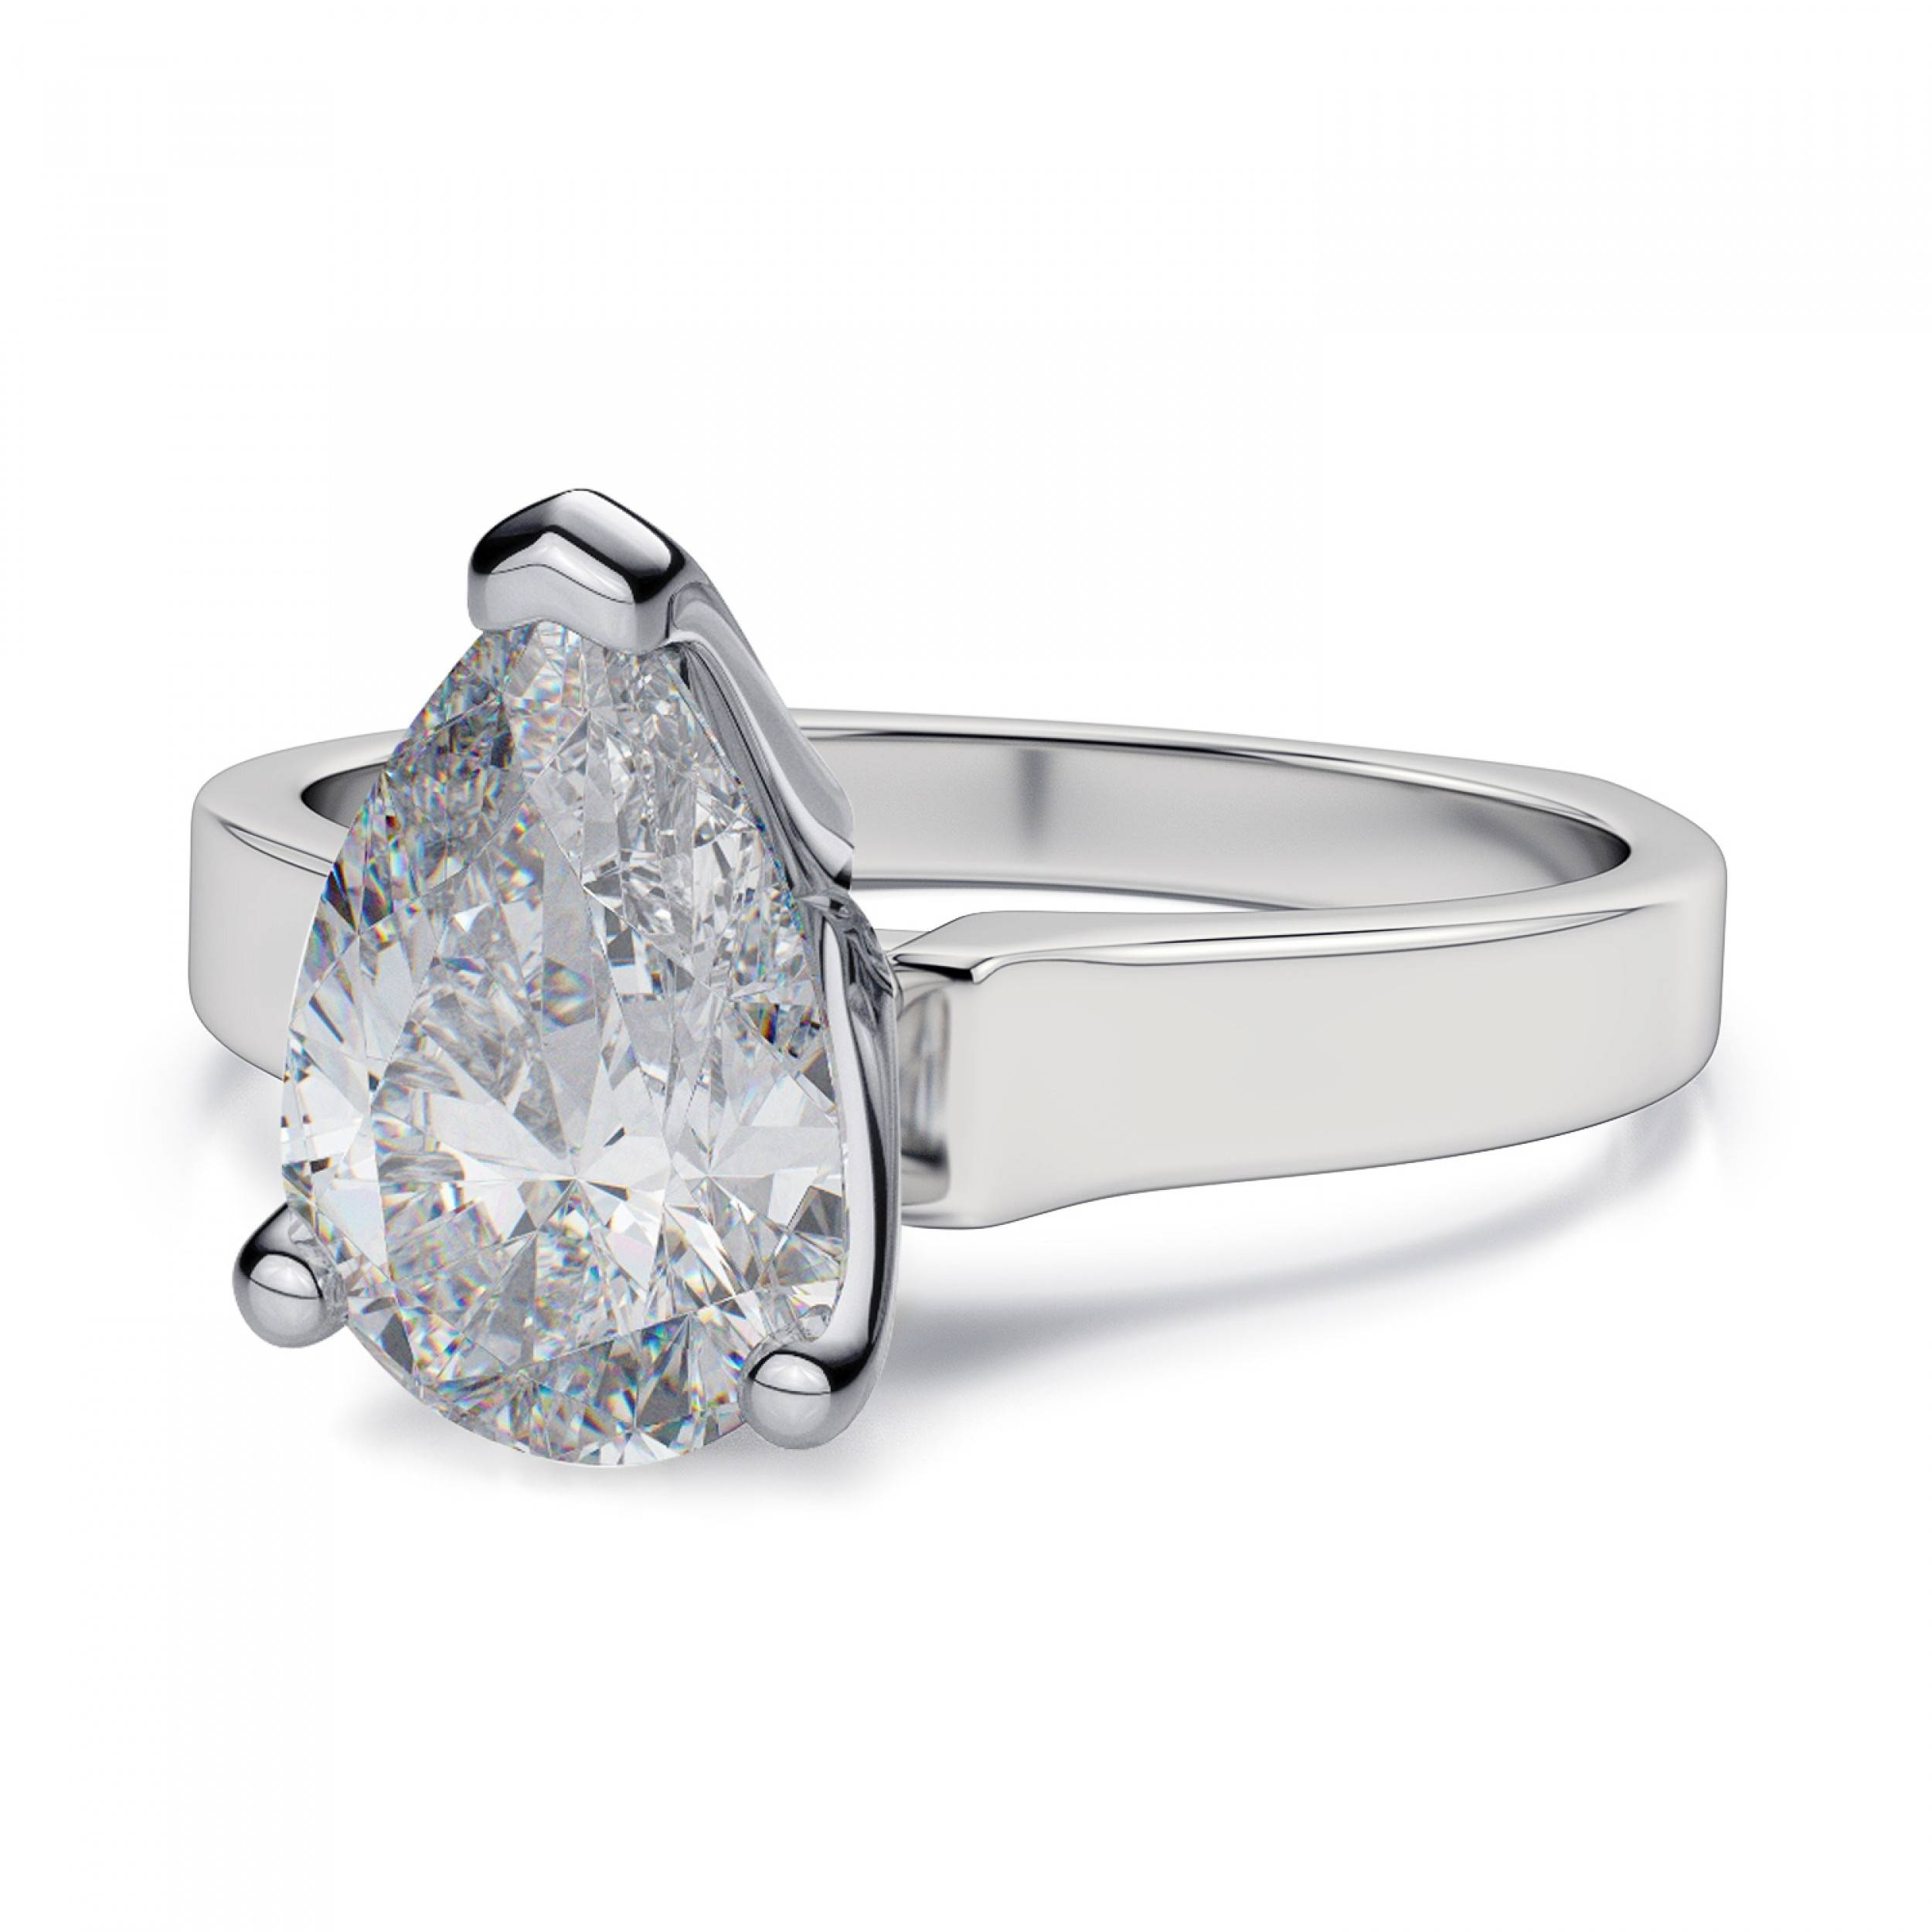 setting enhancing settings jewellery pave look halo a for the ring rings of engagement diamond mounts only with